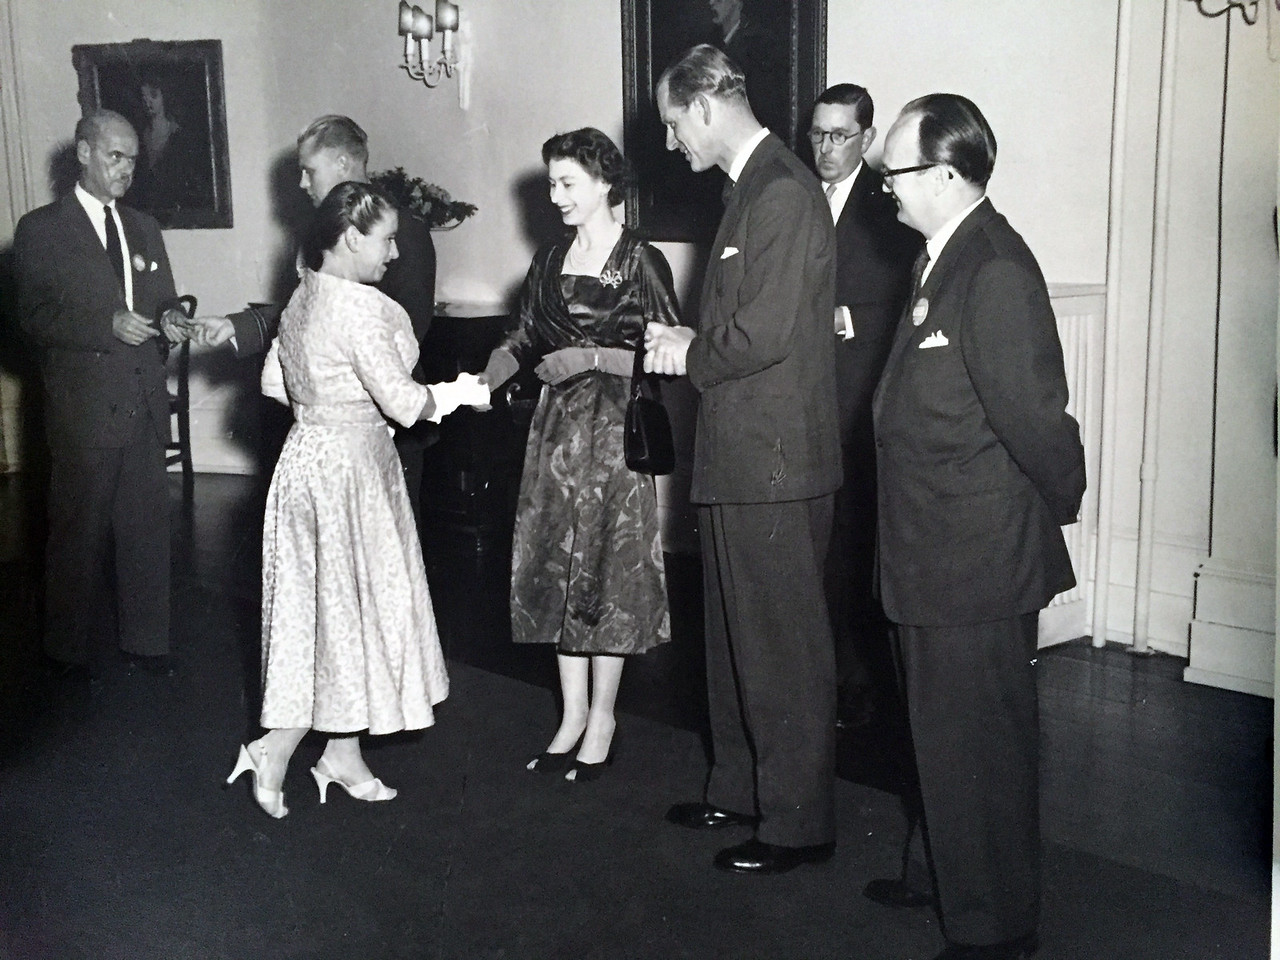 James McCooke, Jean Mackie (curtseying)to Queen Elizabeth, and Victor Mackie (then president of the gallery) beside Prince Phillip. (Photo courtesy of Richard Mackie)undated